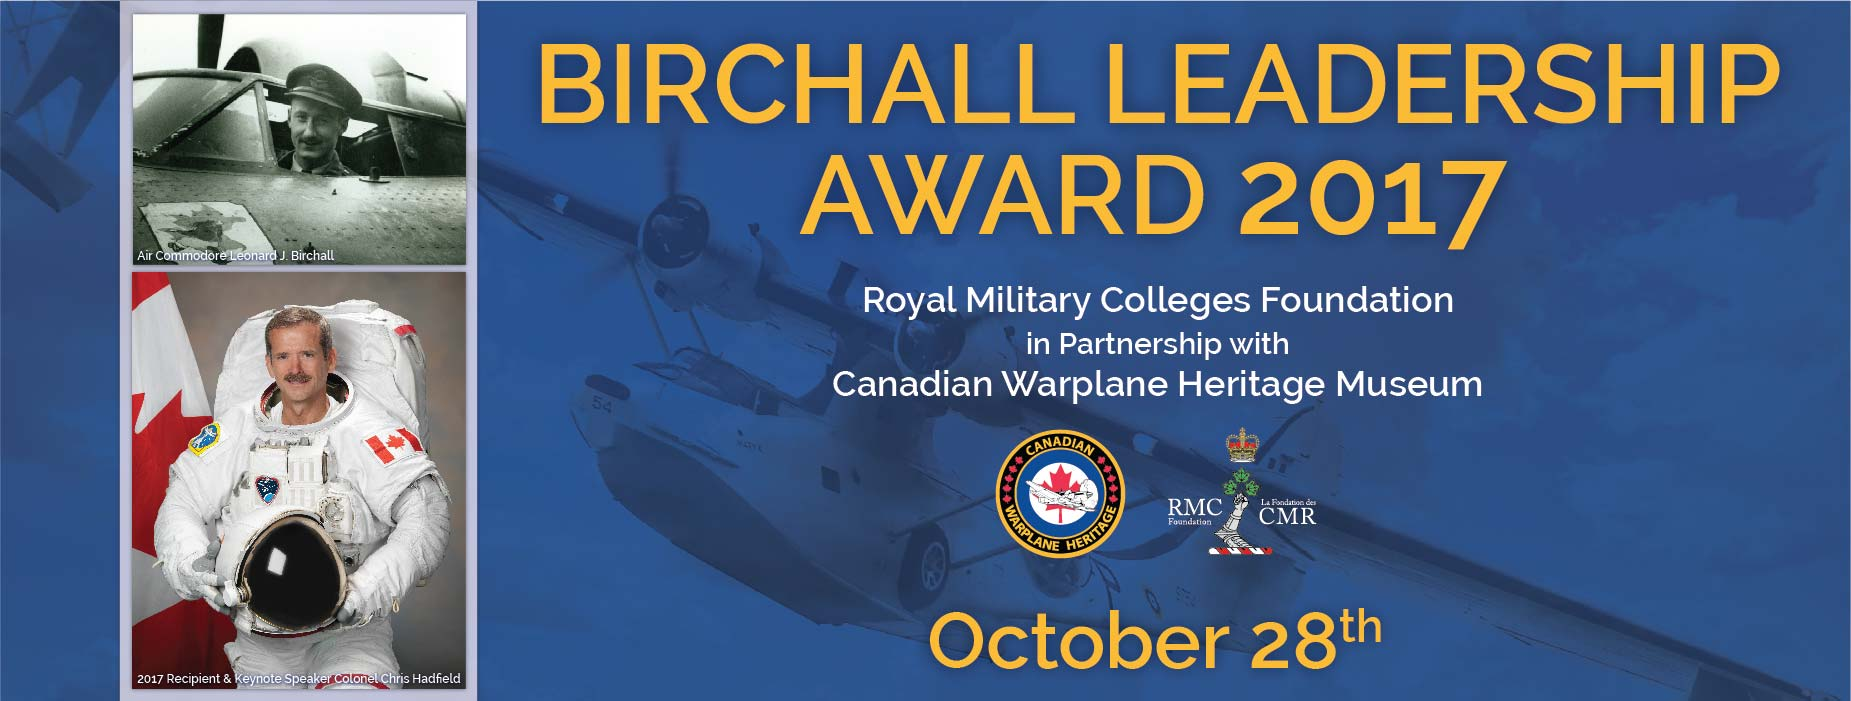 Poster for - Birchall Leadership Award 2017